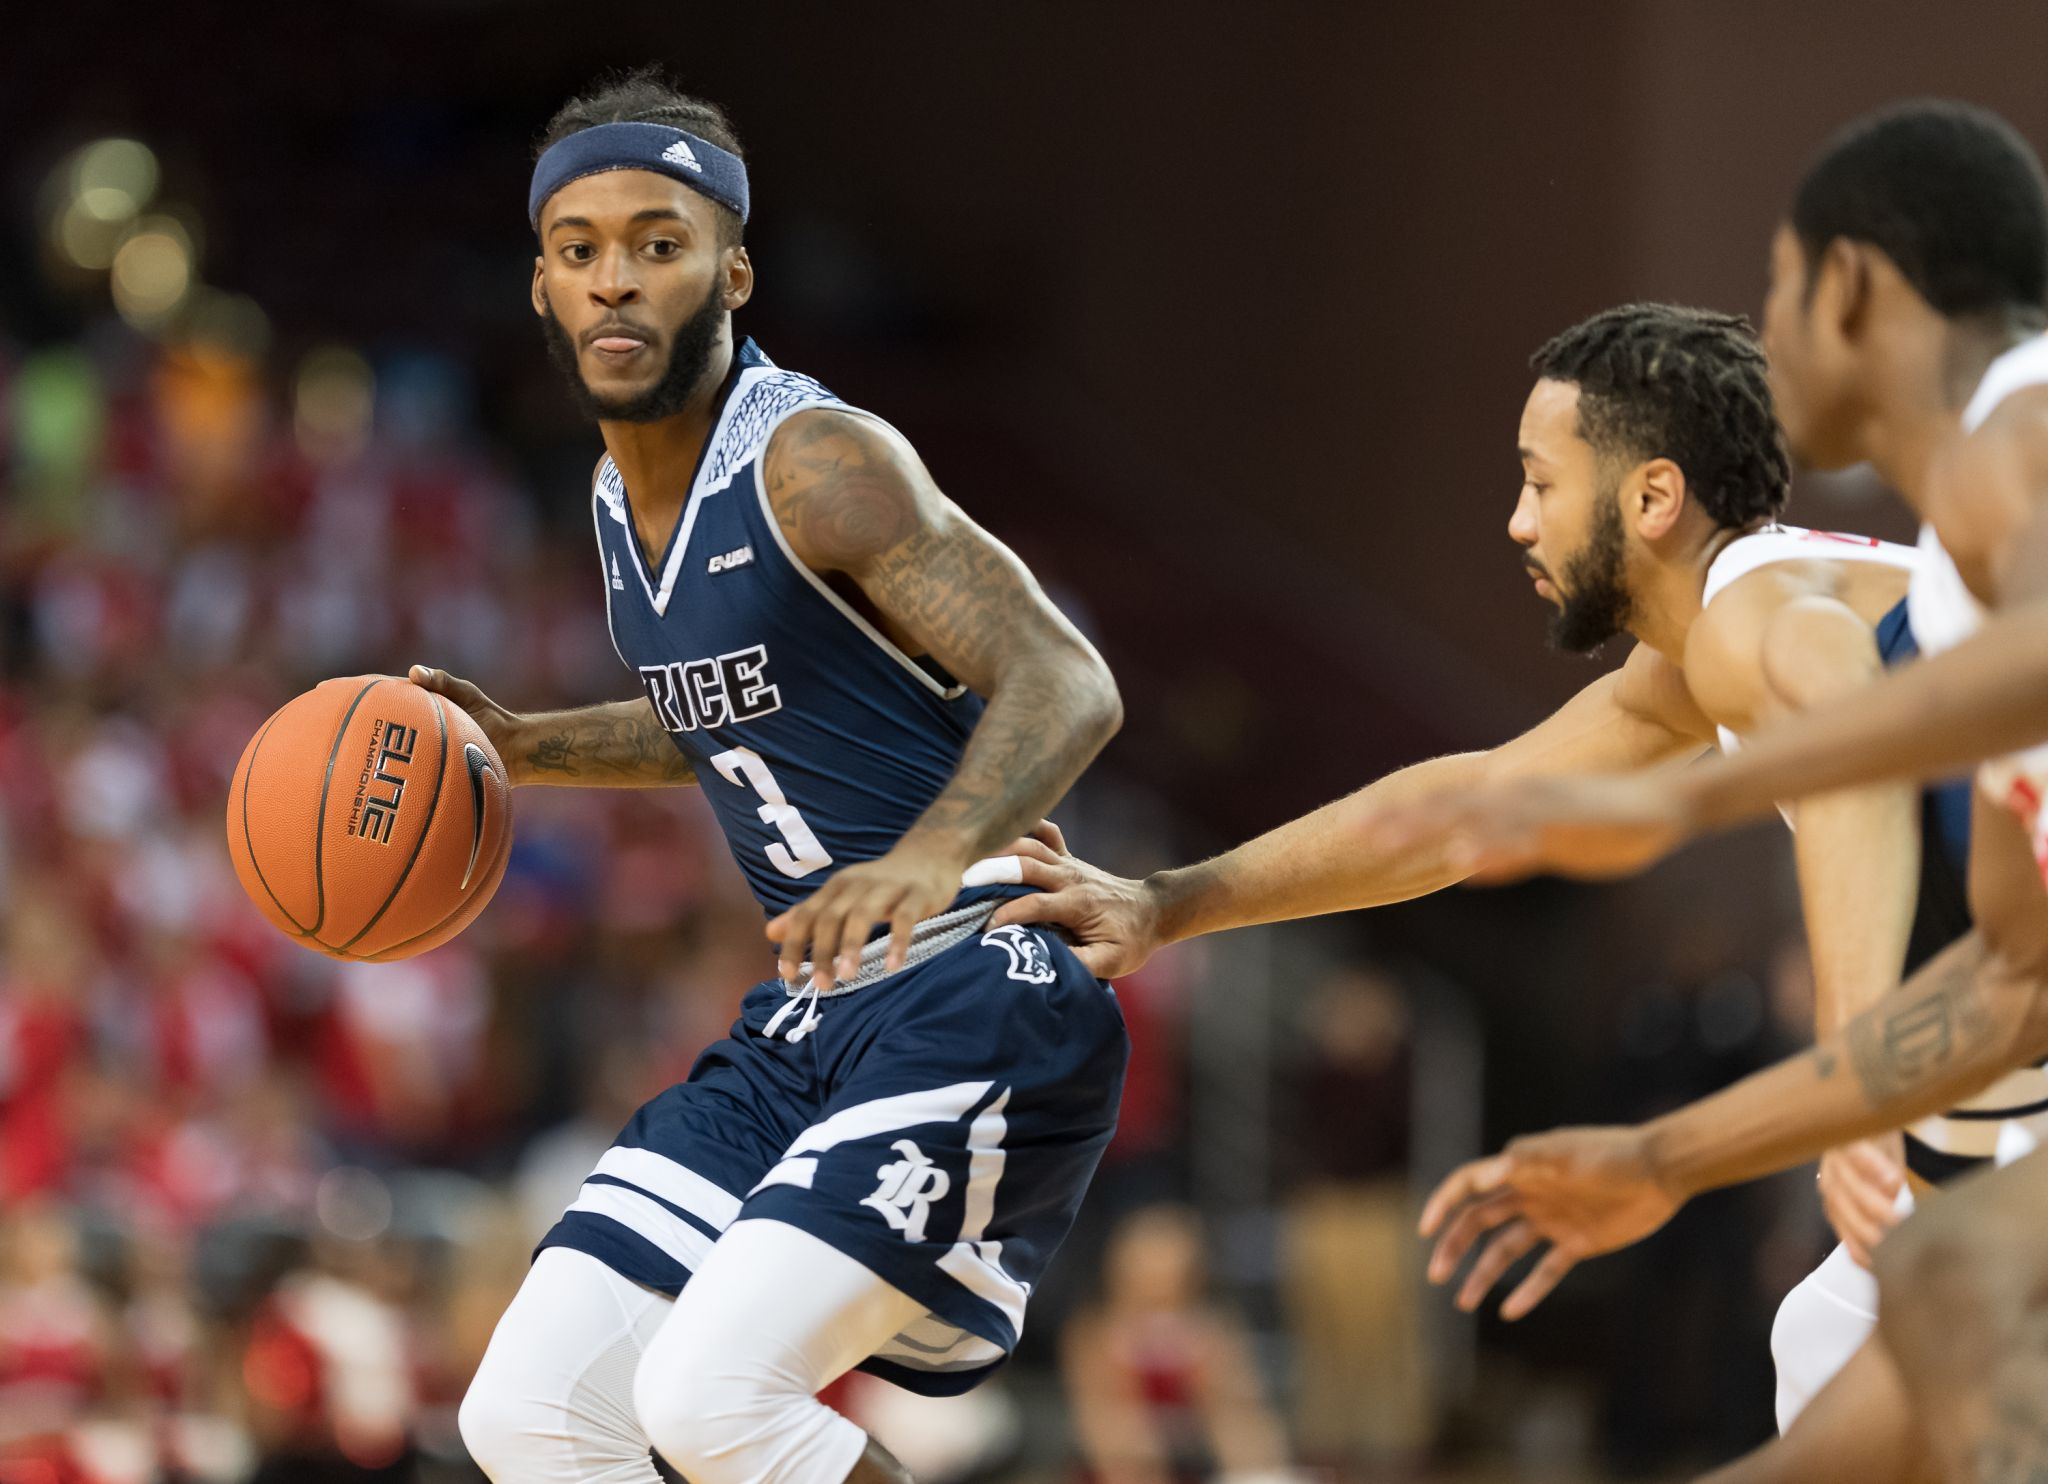 Ako Adams leads Rice past Southern Mississippi - Houston ...